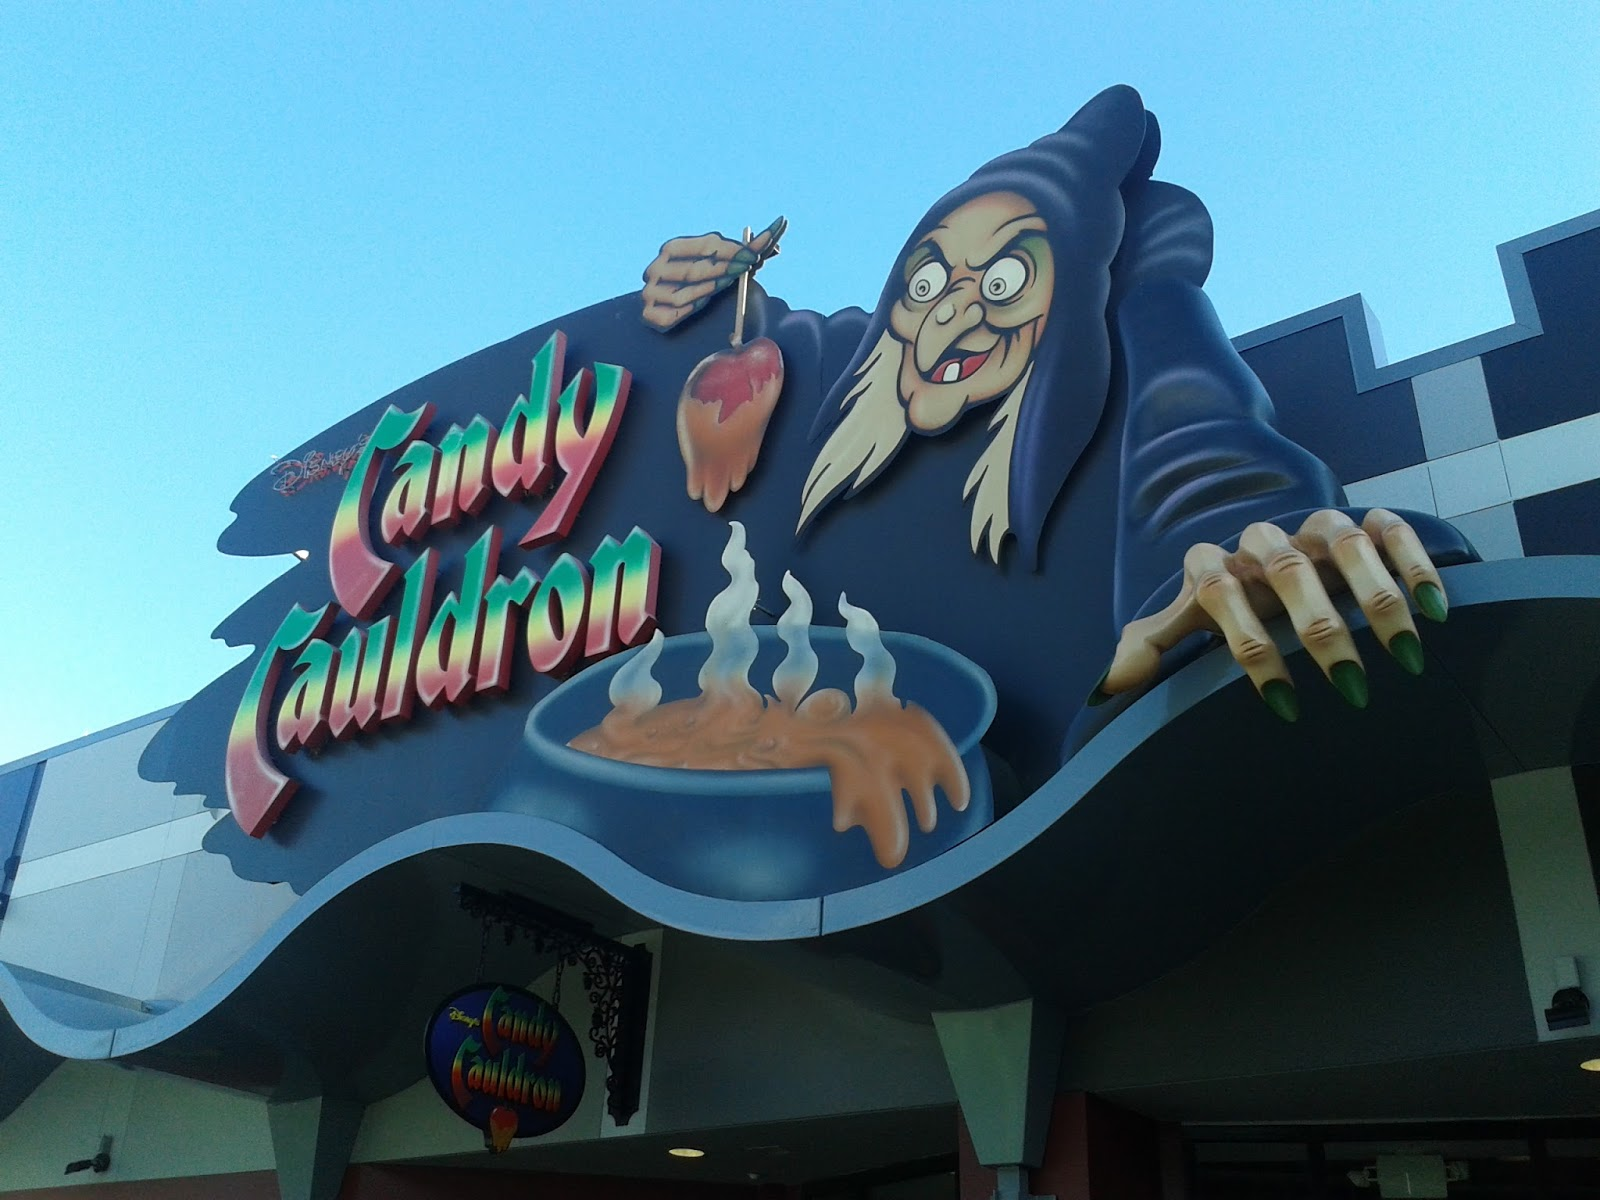 Disney's Candy Cauldron Downtown Disney